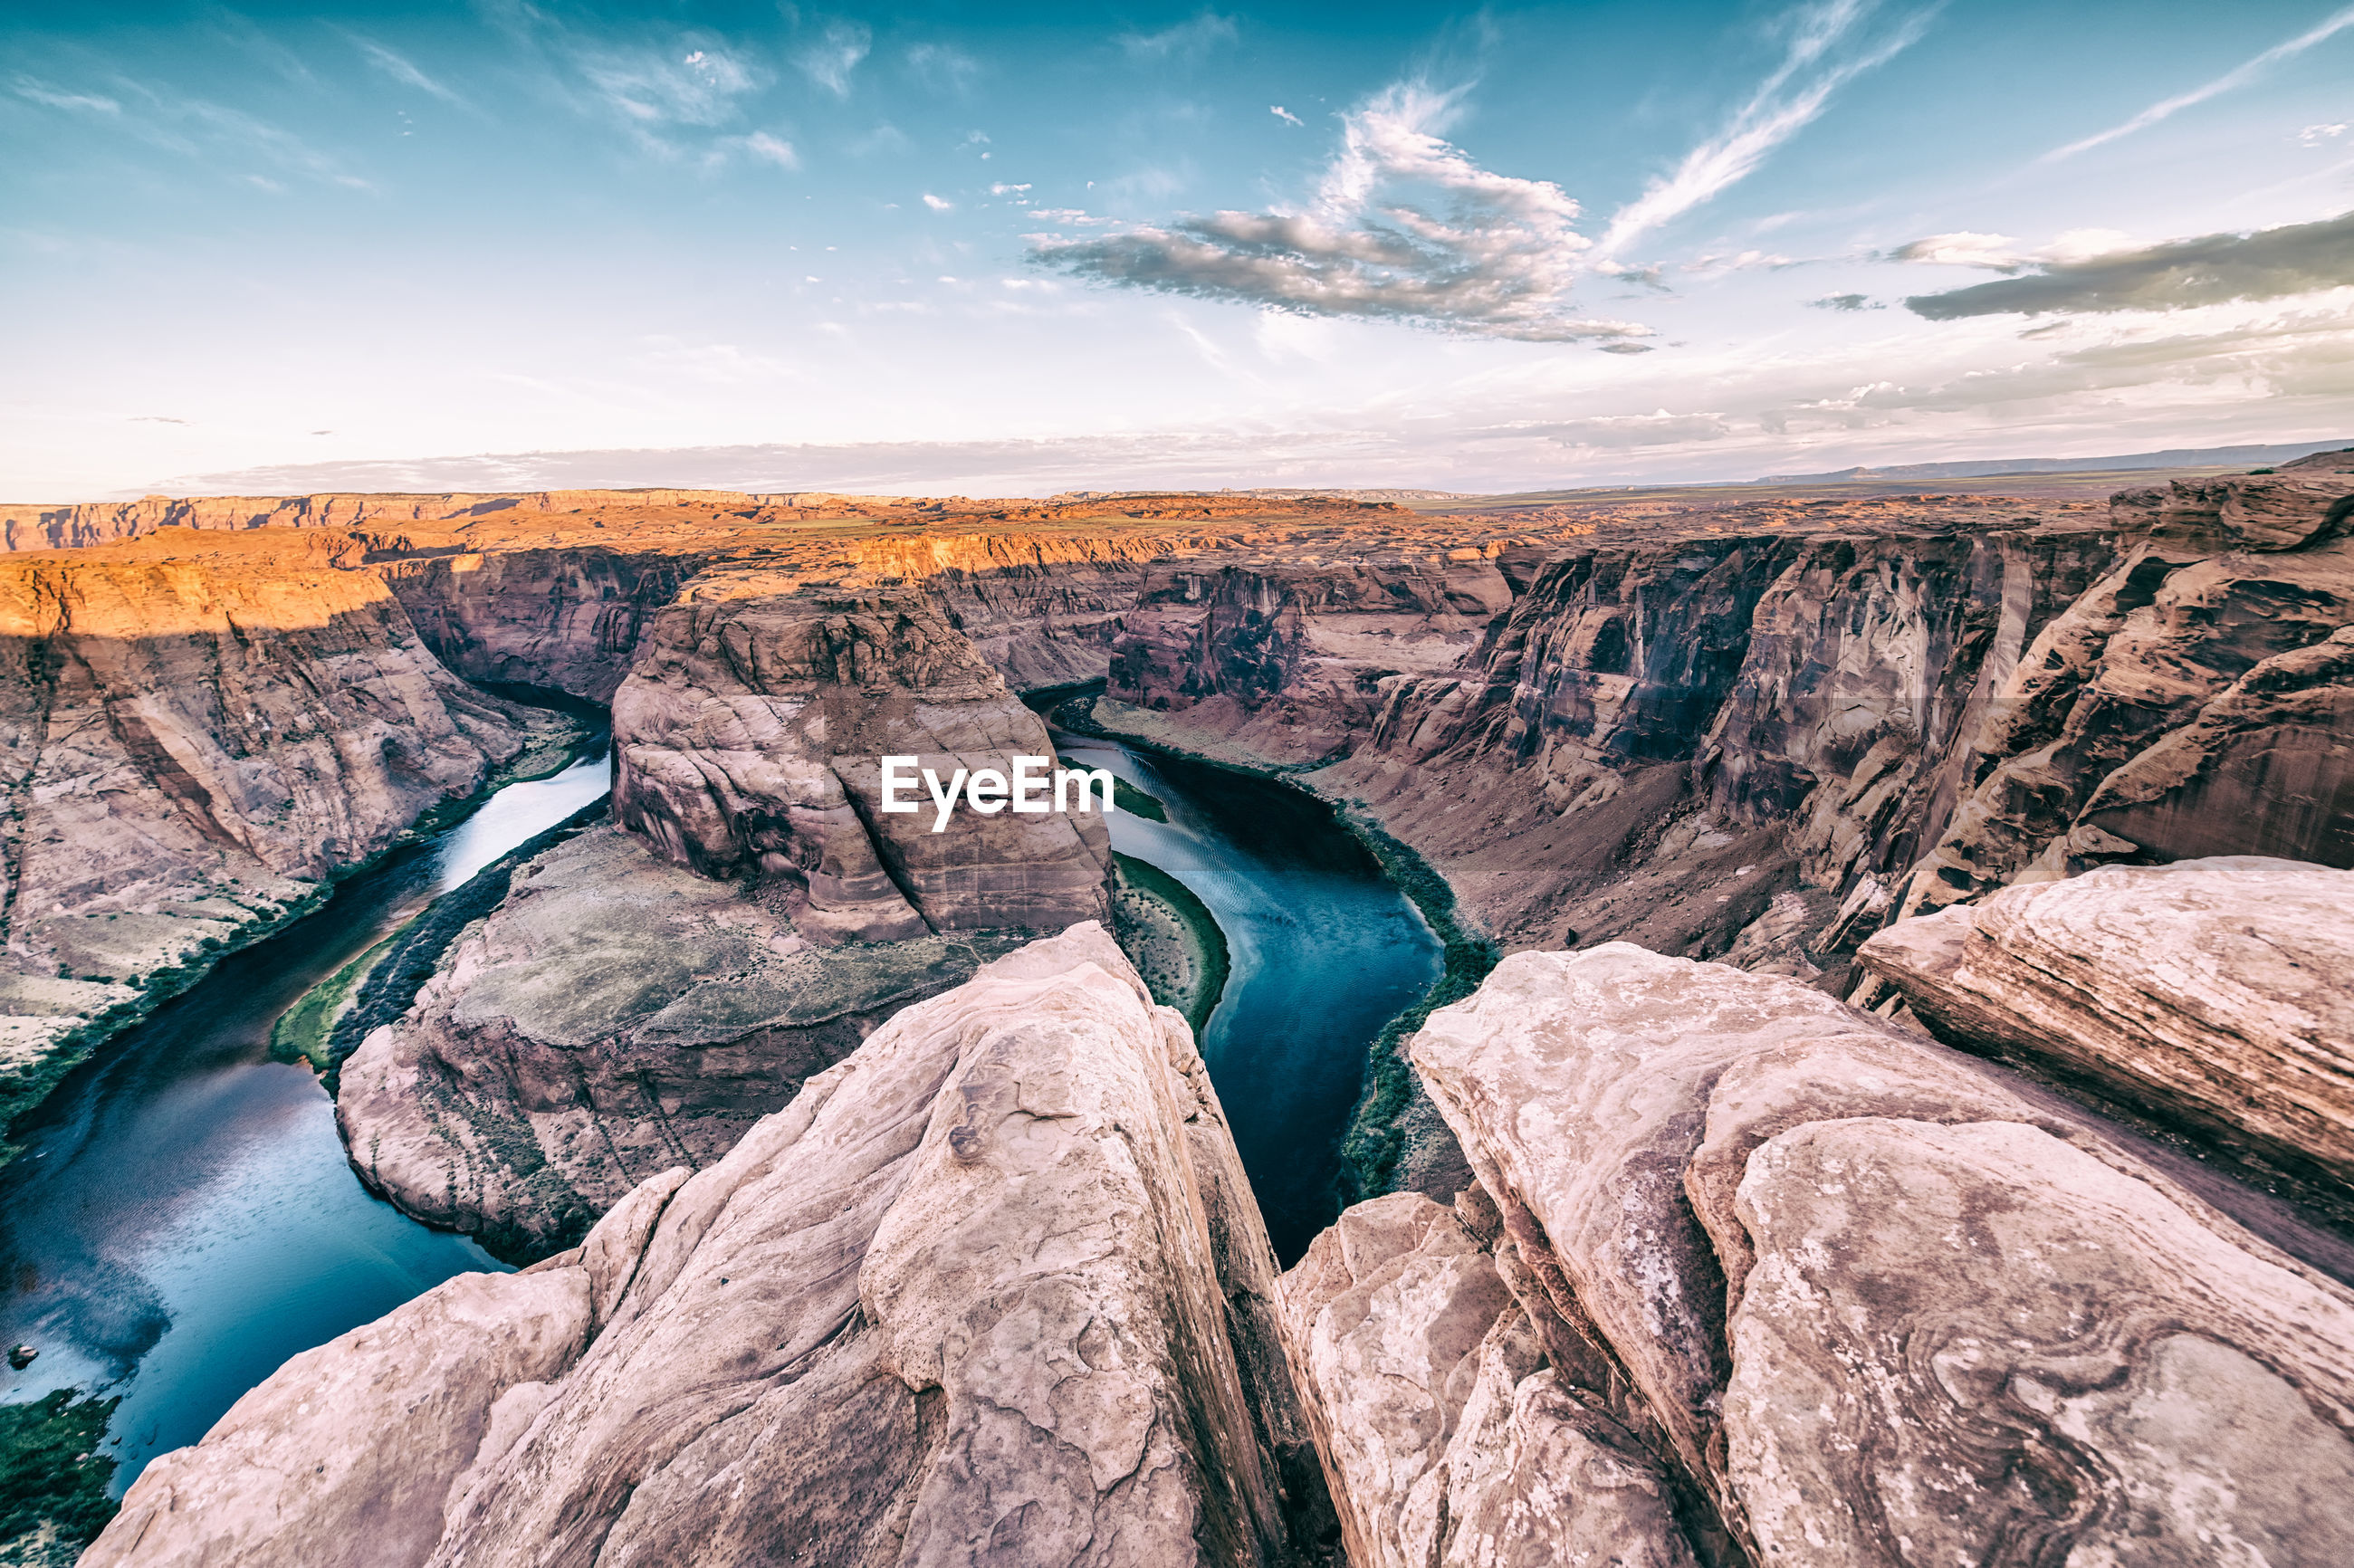 SCENIC VIEW OF ROCKS AGAINST SKY